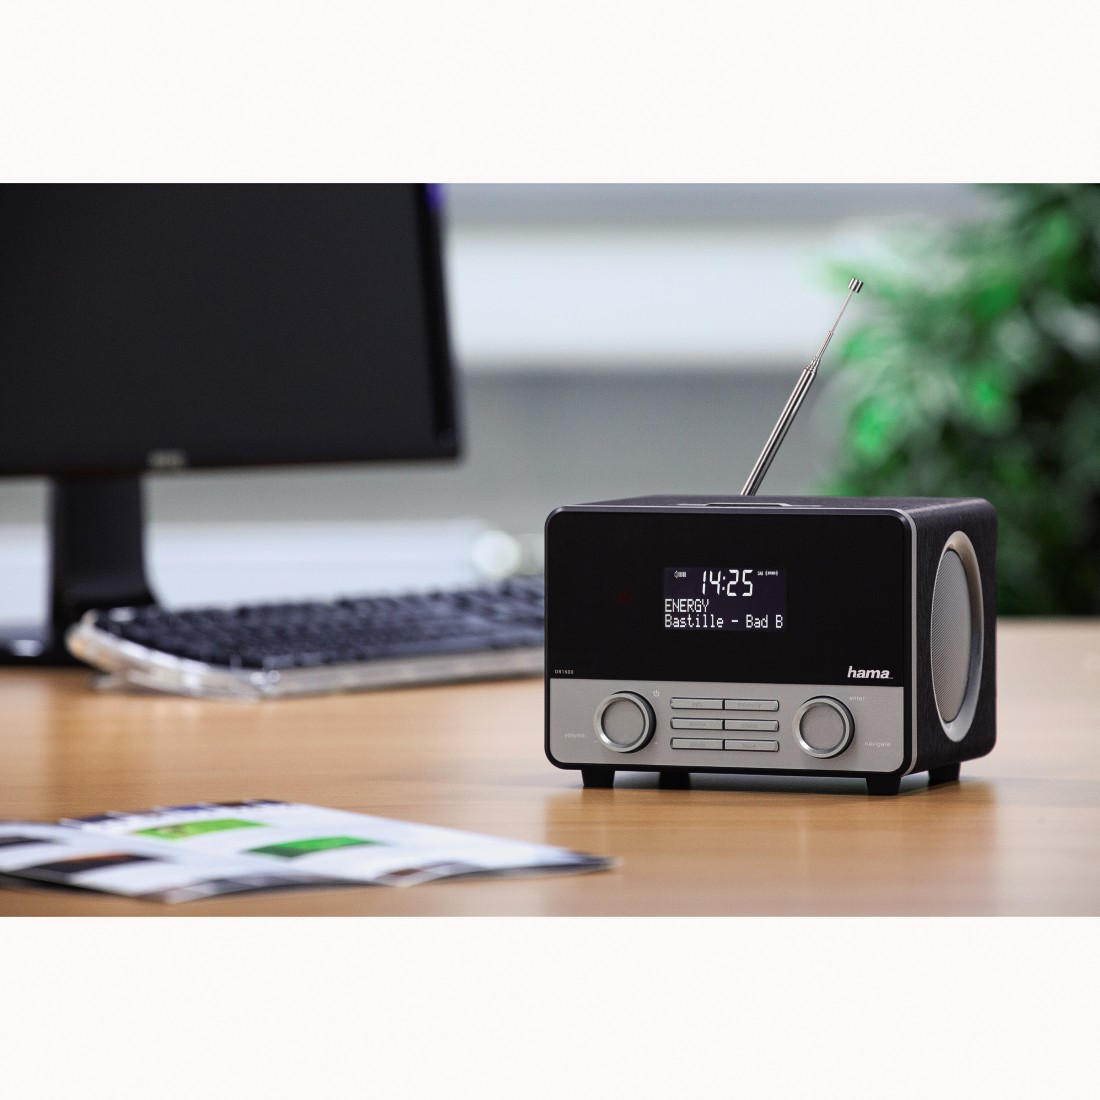 awx2 High-Res Appliance 2 - Hama, DR1600BT Digital Radio, DAB+/FM/Bluetooth